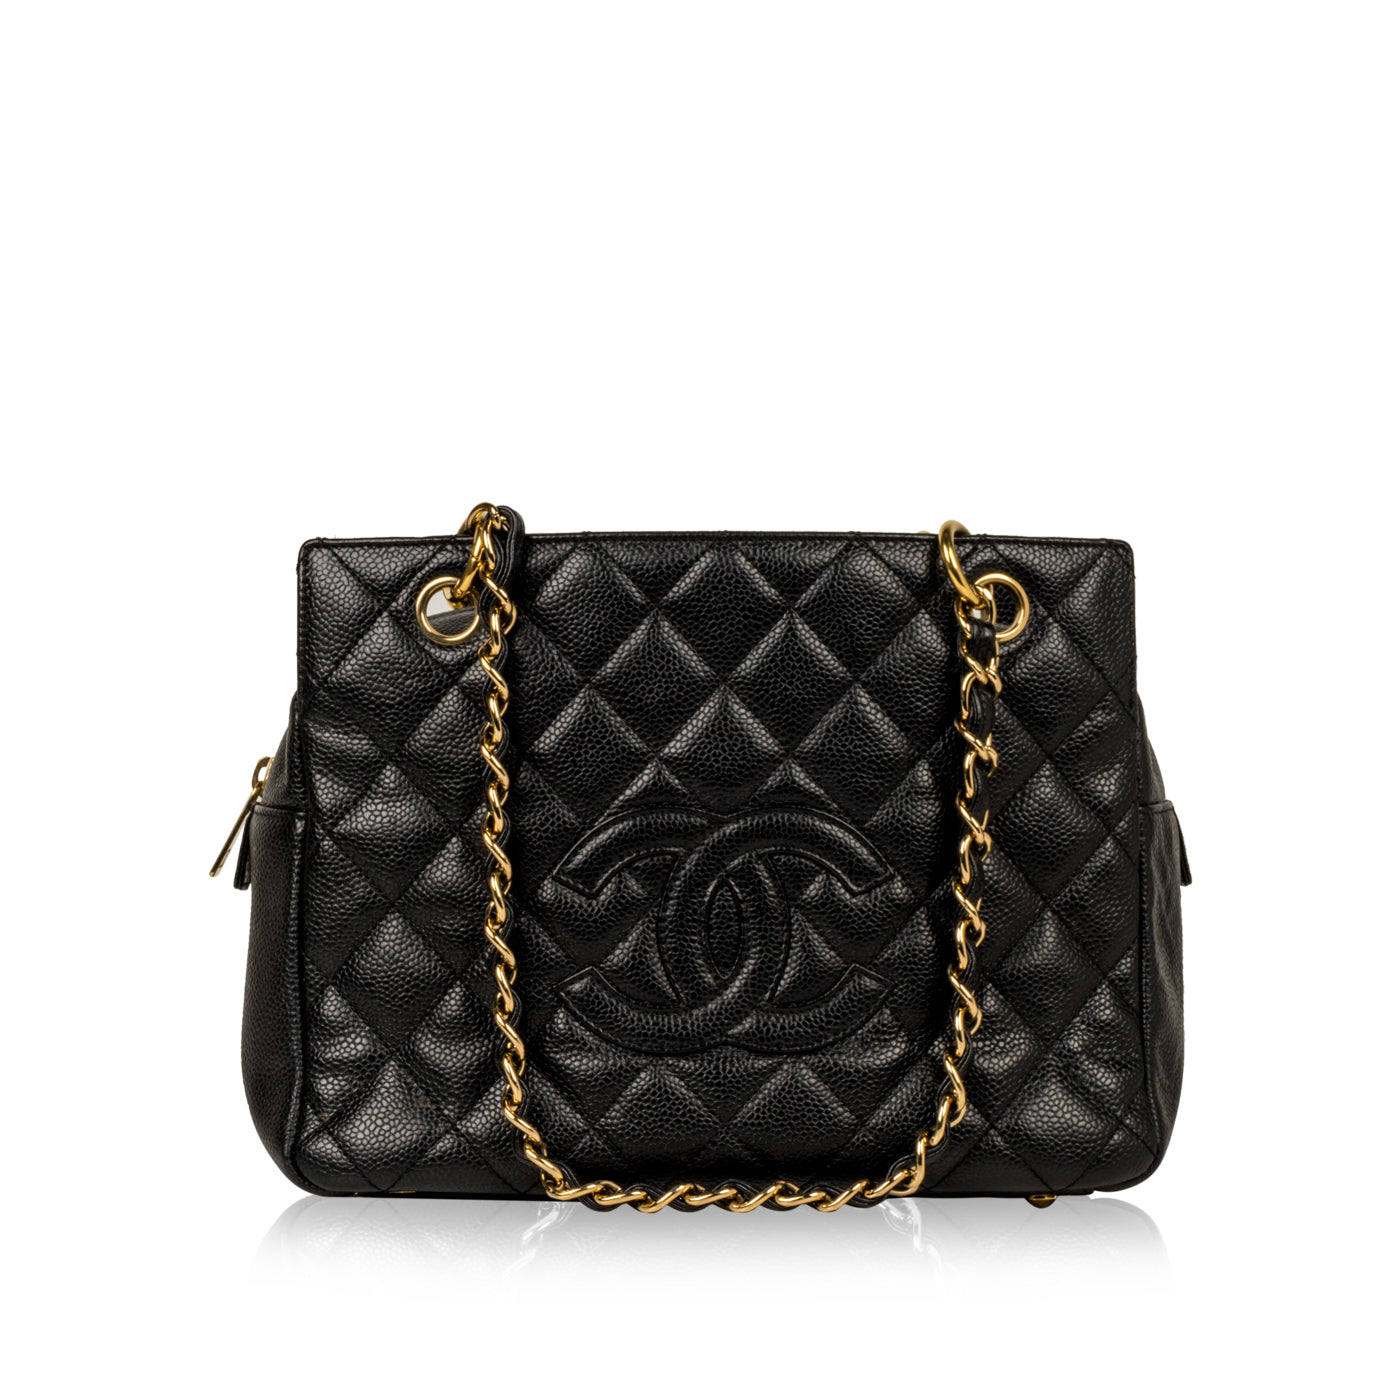 abef44f8815 Chanel - Petite Timeless Tote - PTT - Caviar Leather - Pre-Loved ...